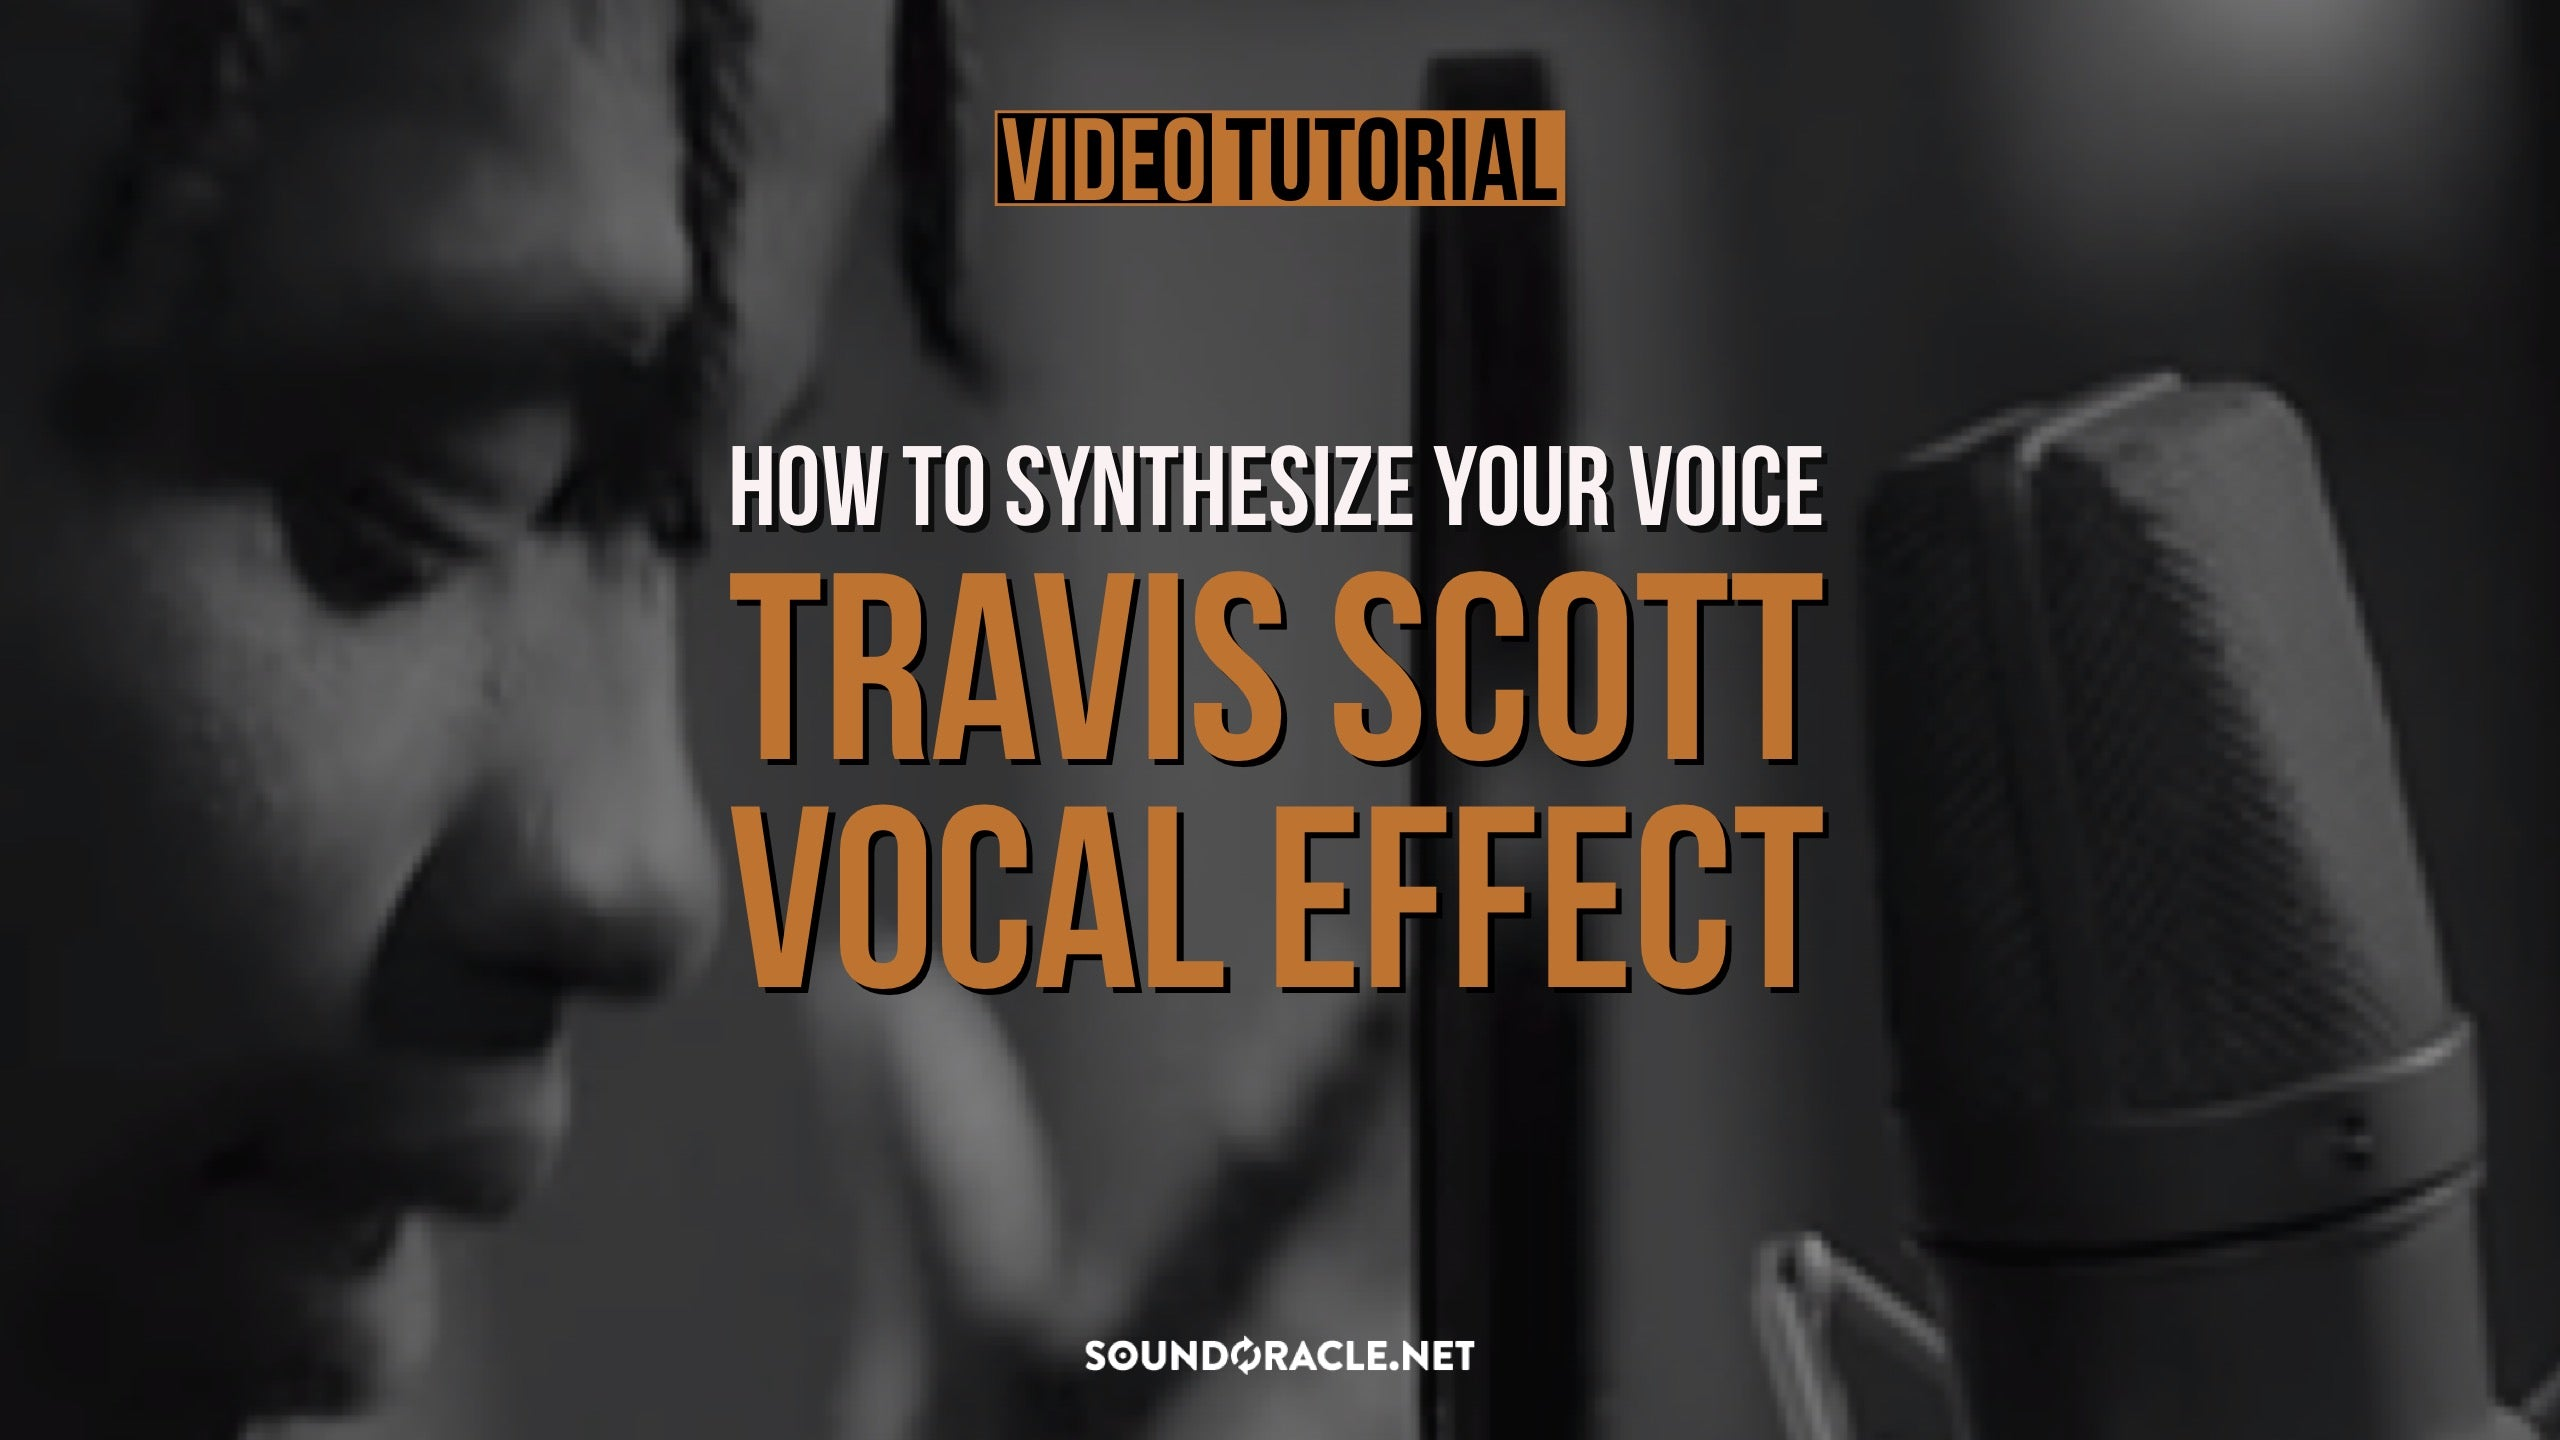 Tutorial - Travis Scott Vocal Effect (How To Synthesize Your Voice)